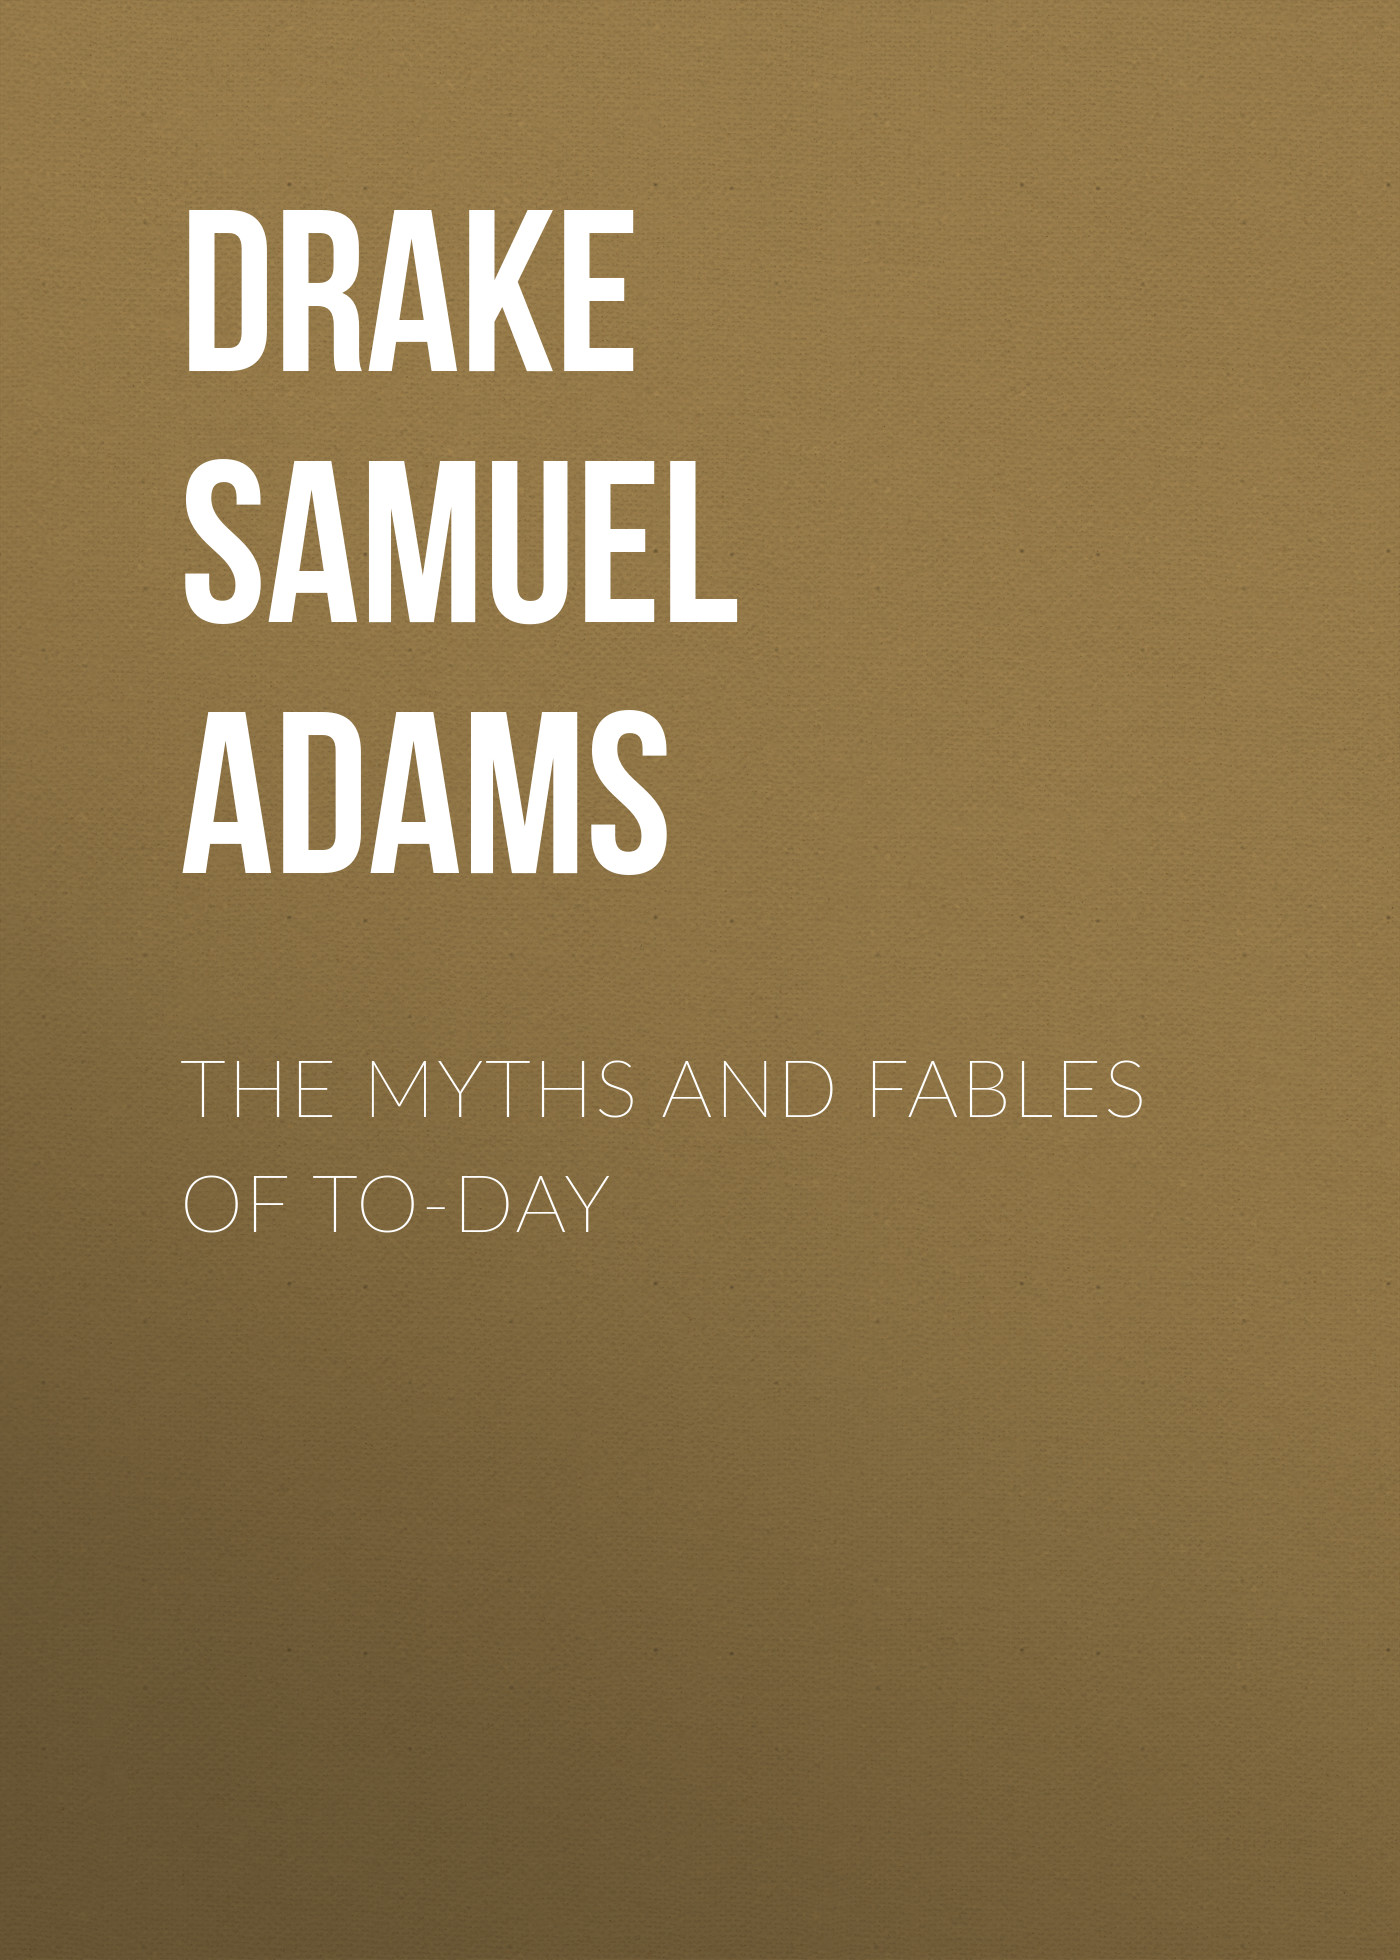 Drake Samuel Adams The Myths and Fables of To-Day fables volume 5 the mean seasons